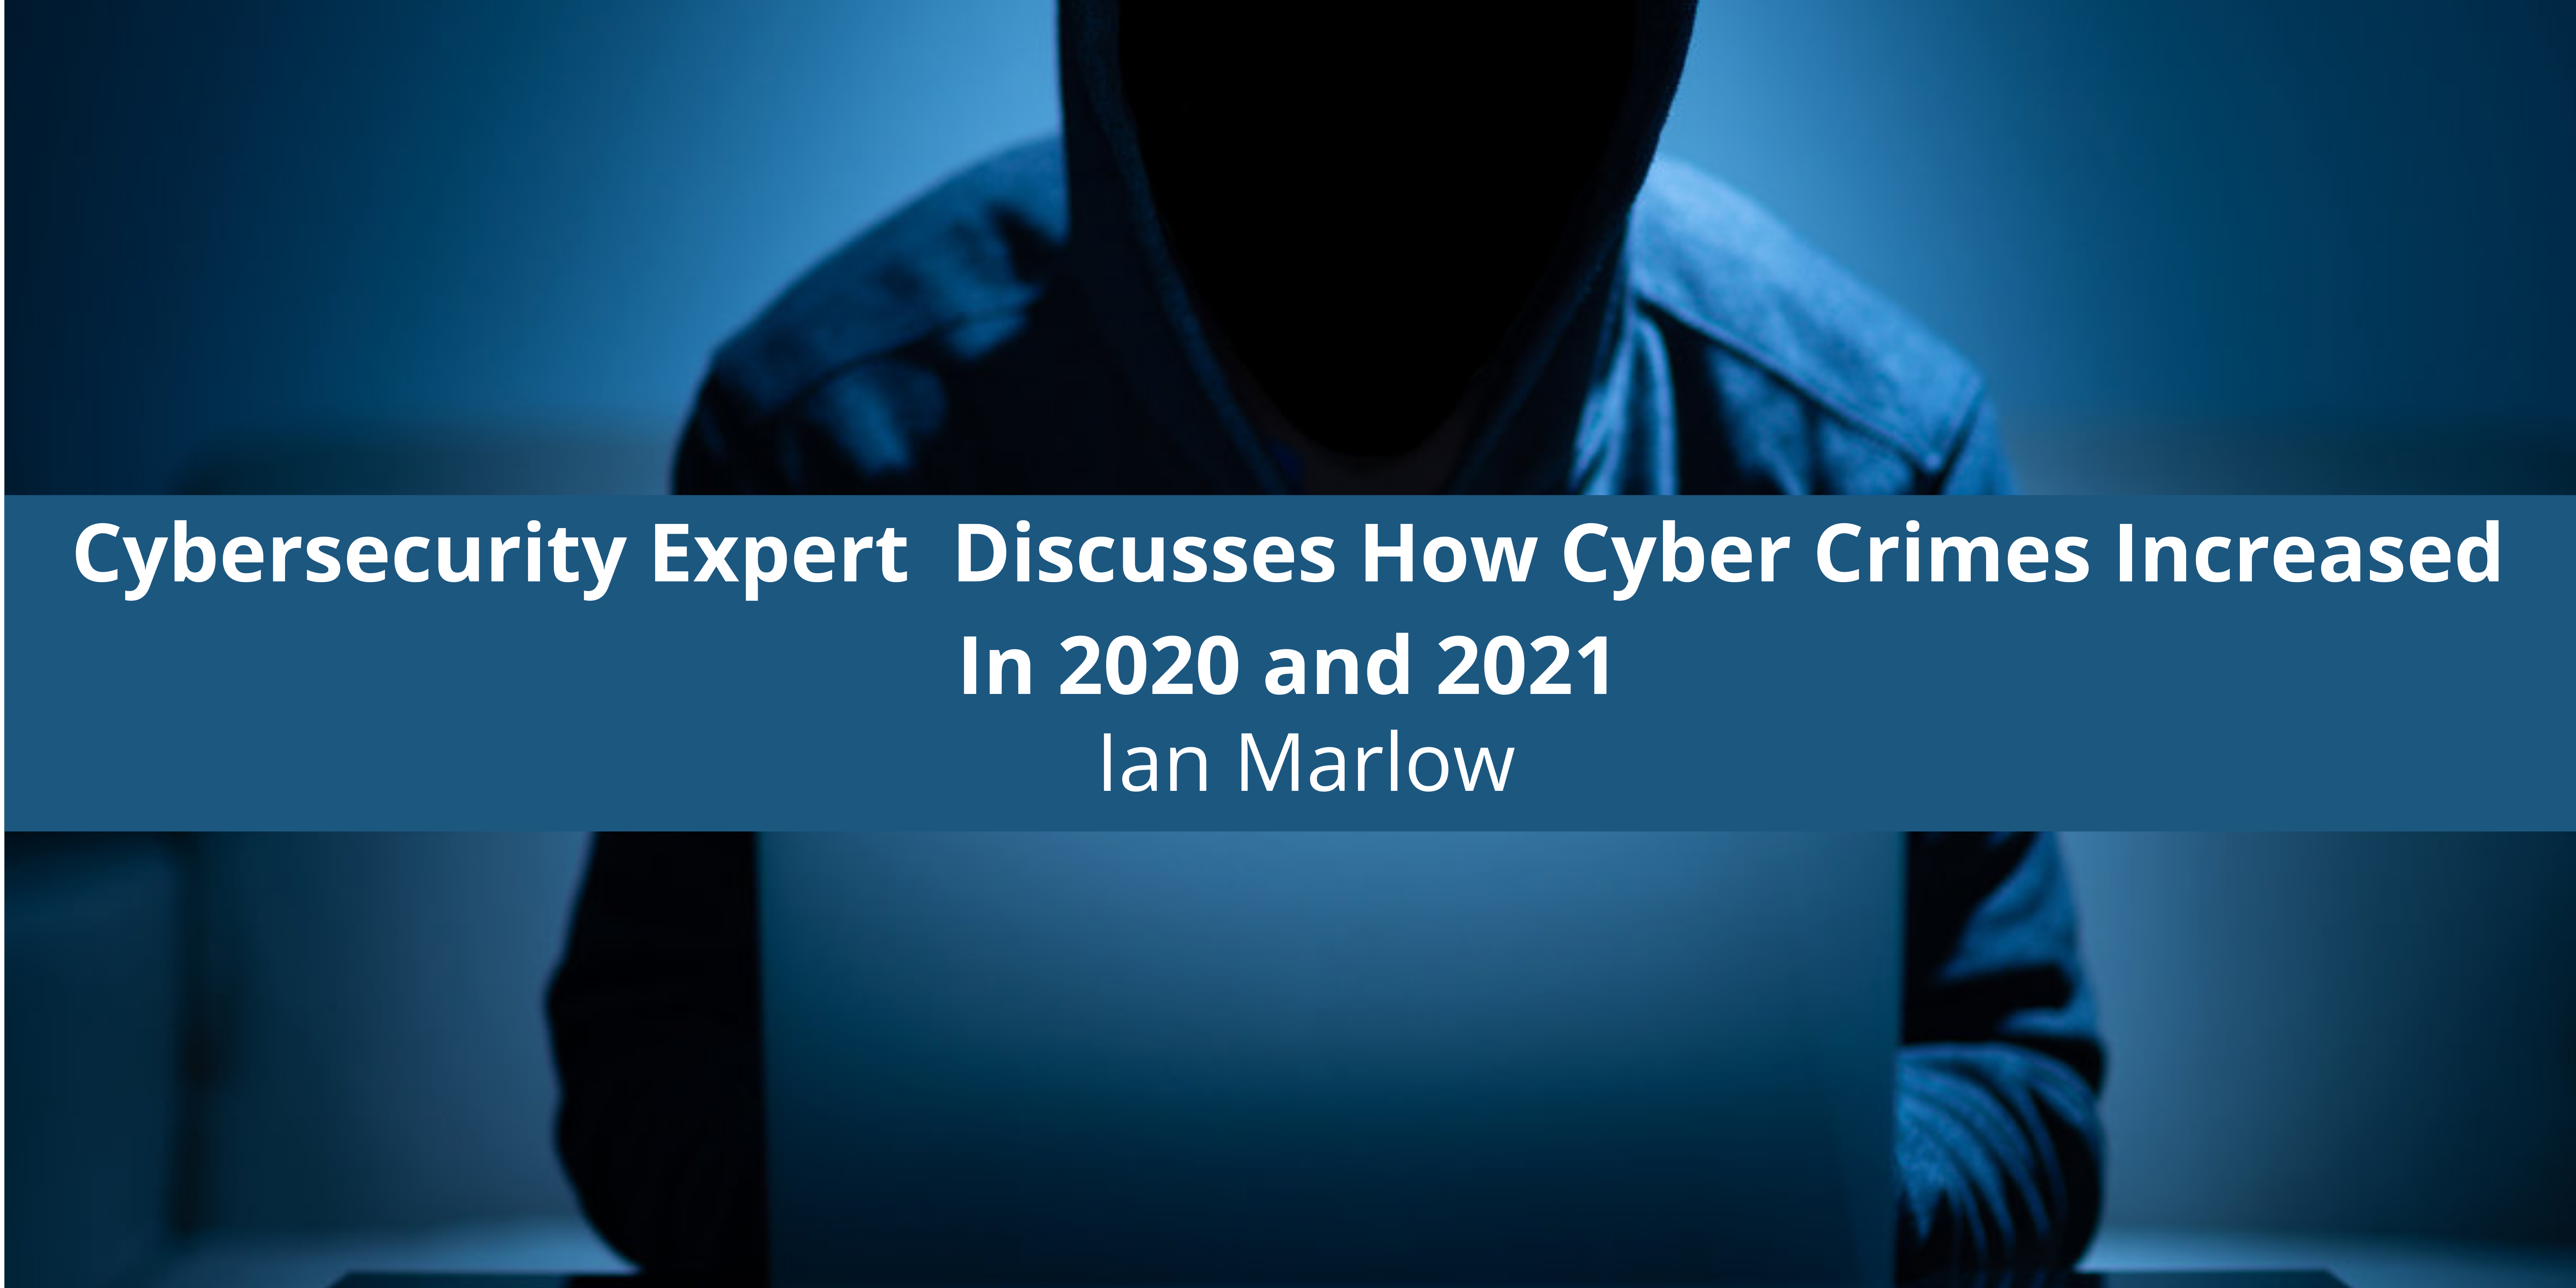 Cybersecurity Expert Ian Marlow Discusses How Cyber In 2020 and 2021